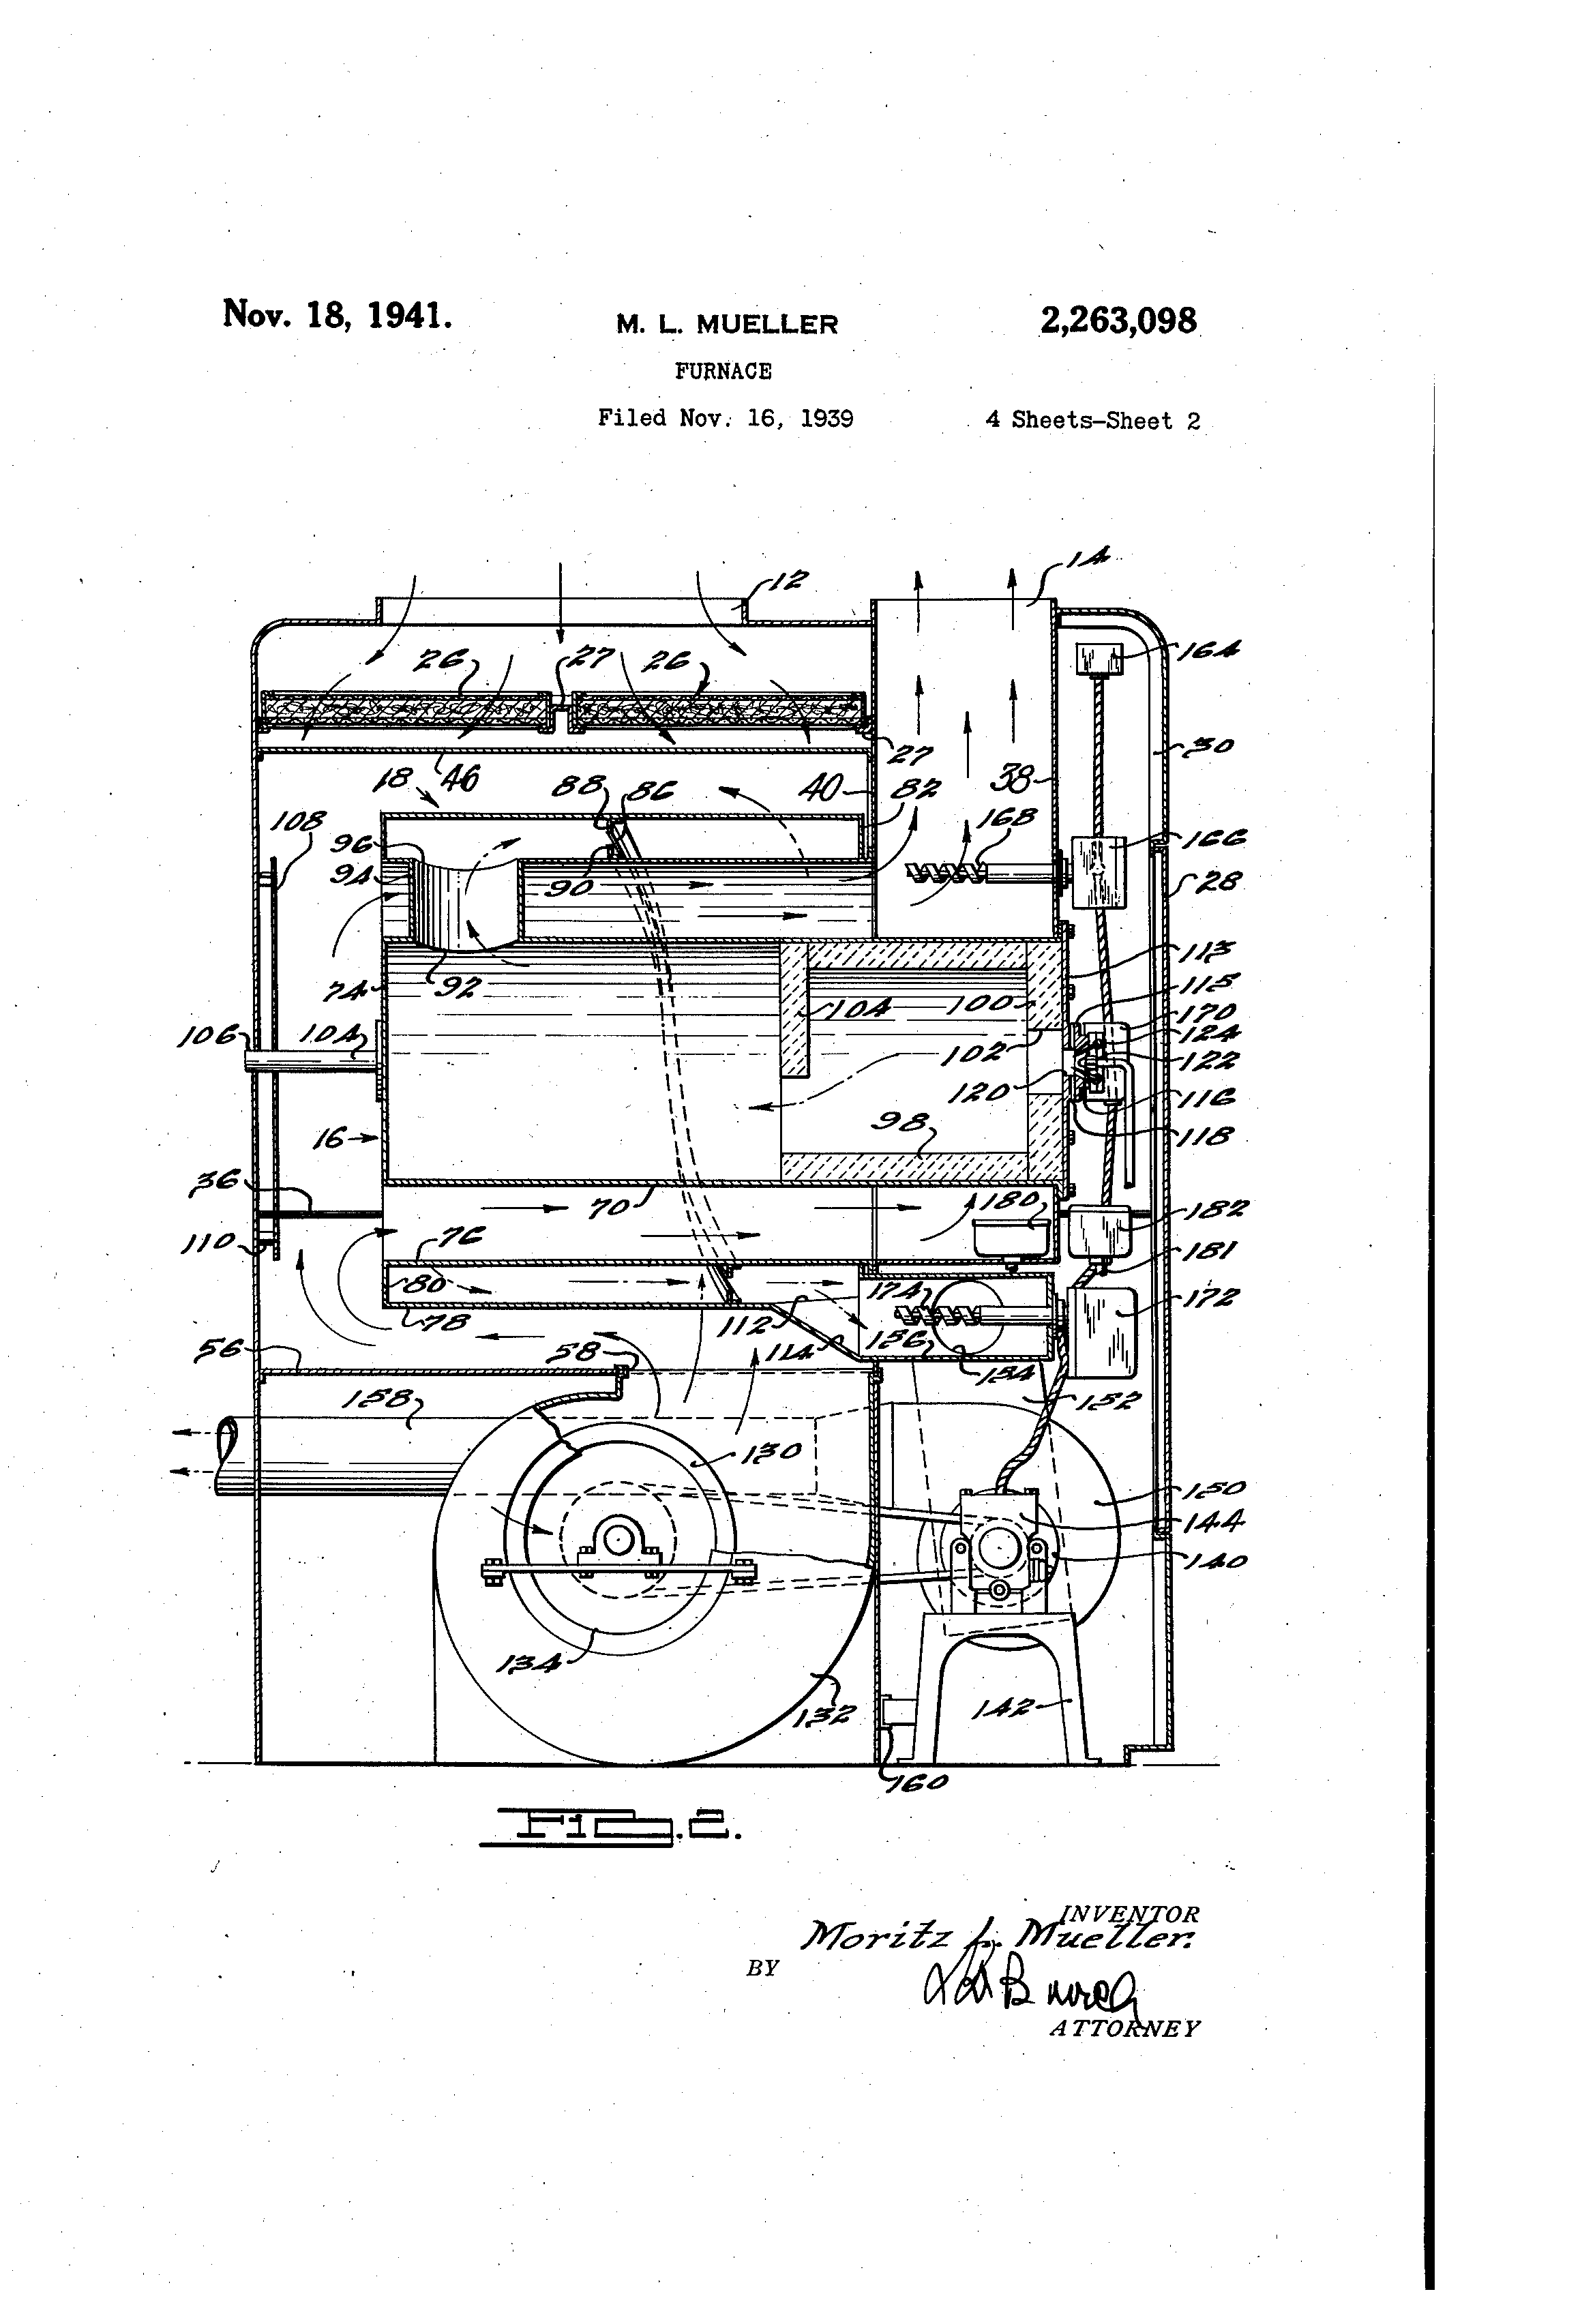 borg warner furnace blower wiring diagram